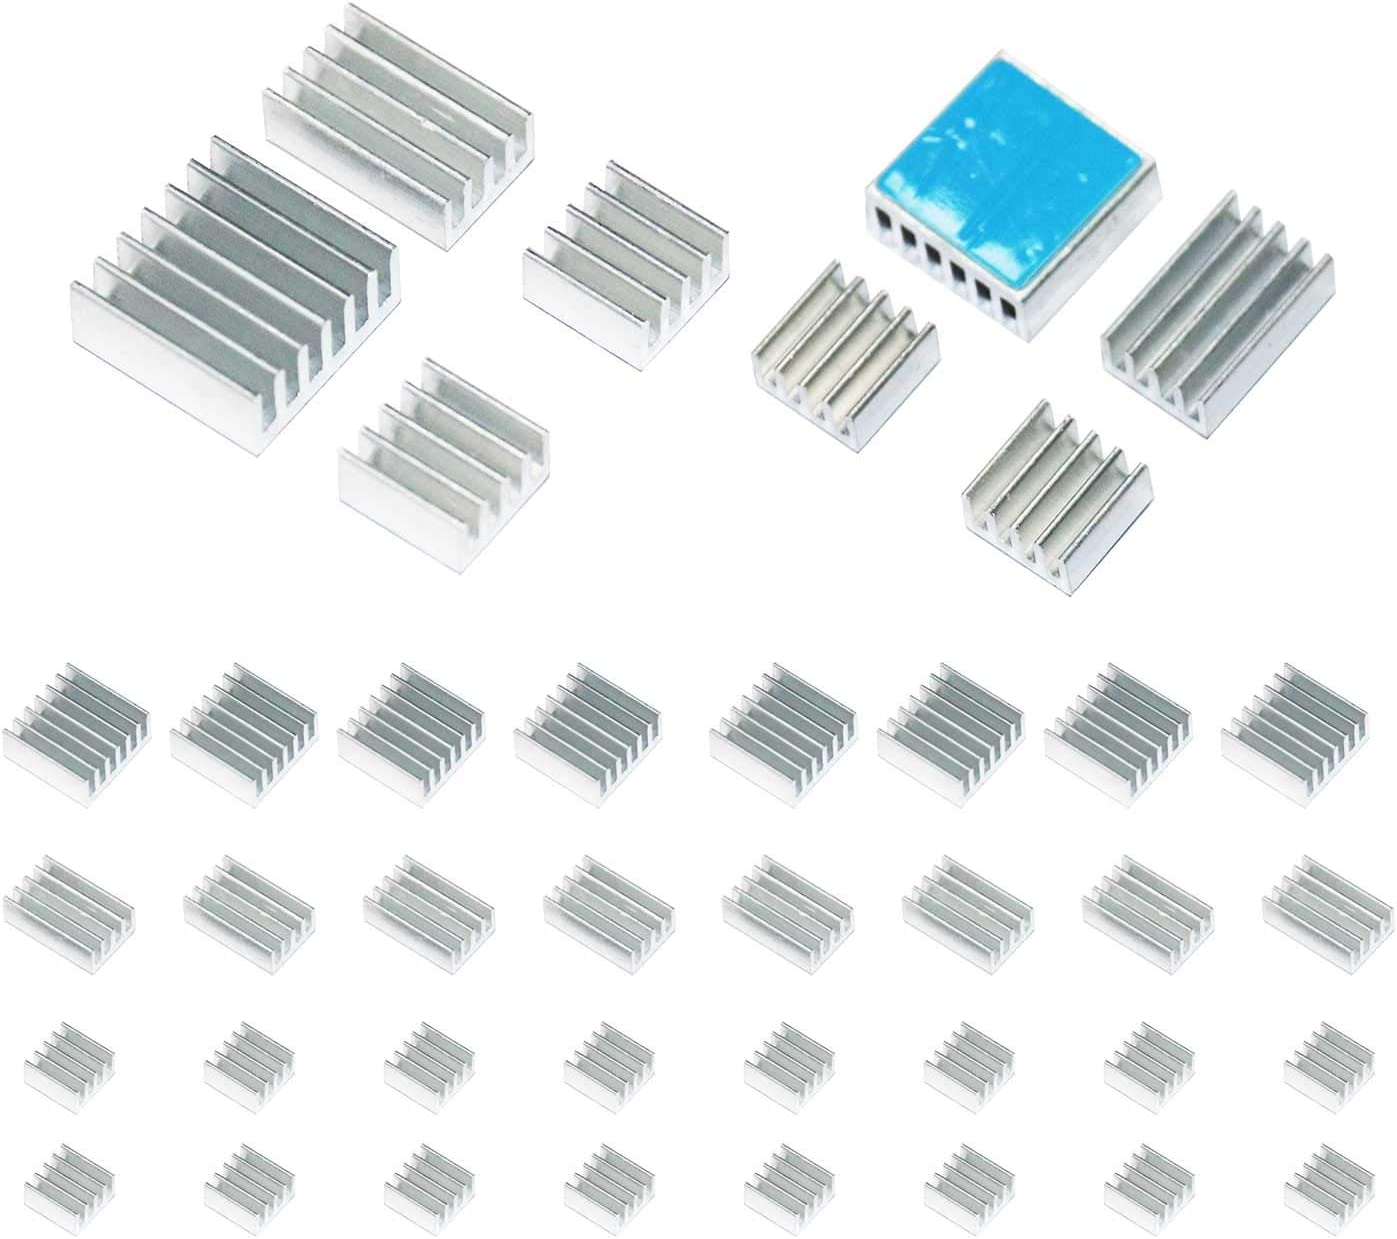 Smalloo 40 PCS Aluminum Heatsinks Kit with Thermal Conductive Adhesive Tape for Raspberry Pi/CPU/GPU VGA/RAM/VRAM/VRM/IC/Chips LED/MOSFET Transistor